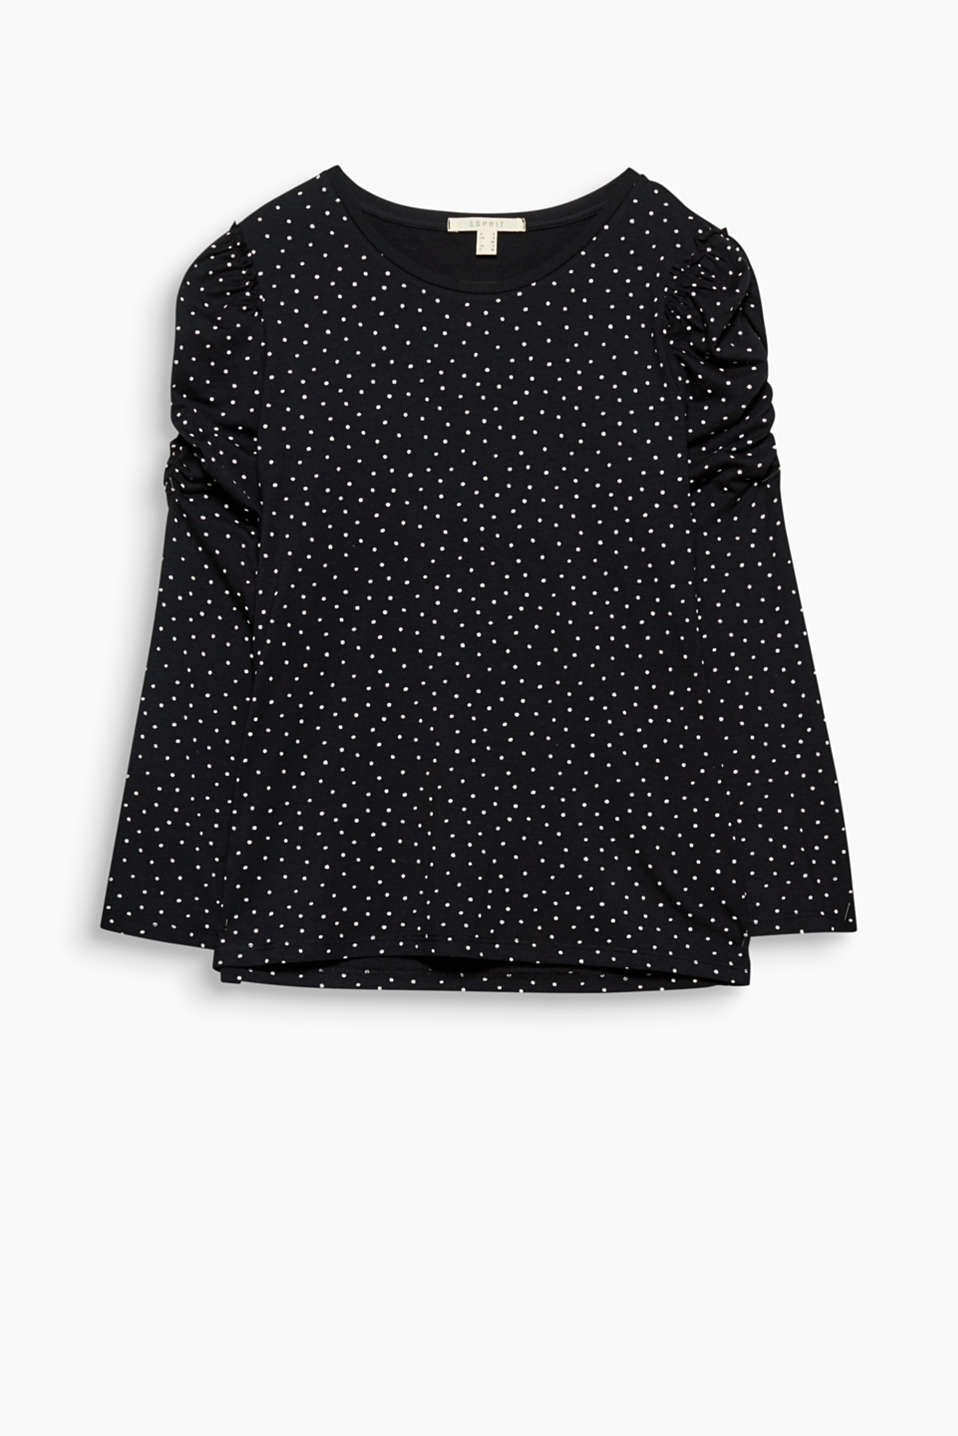 Polka dots, feminine gathers and frills give this soft top its charming look